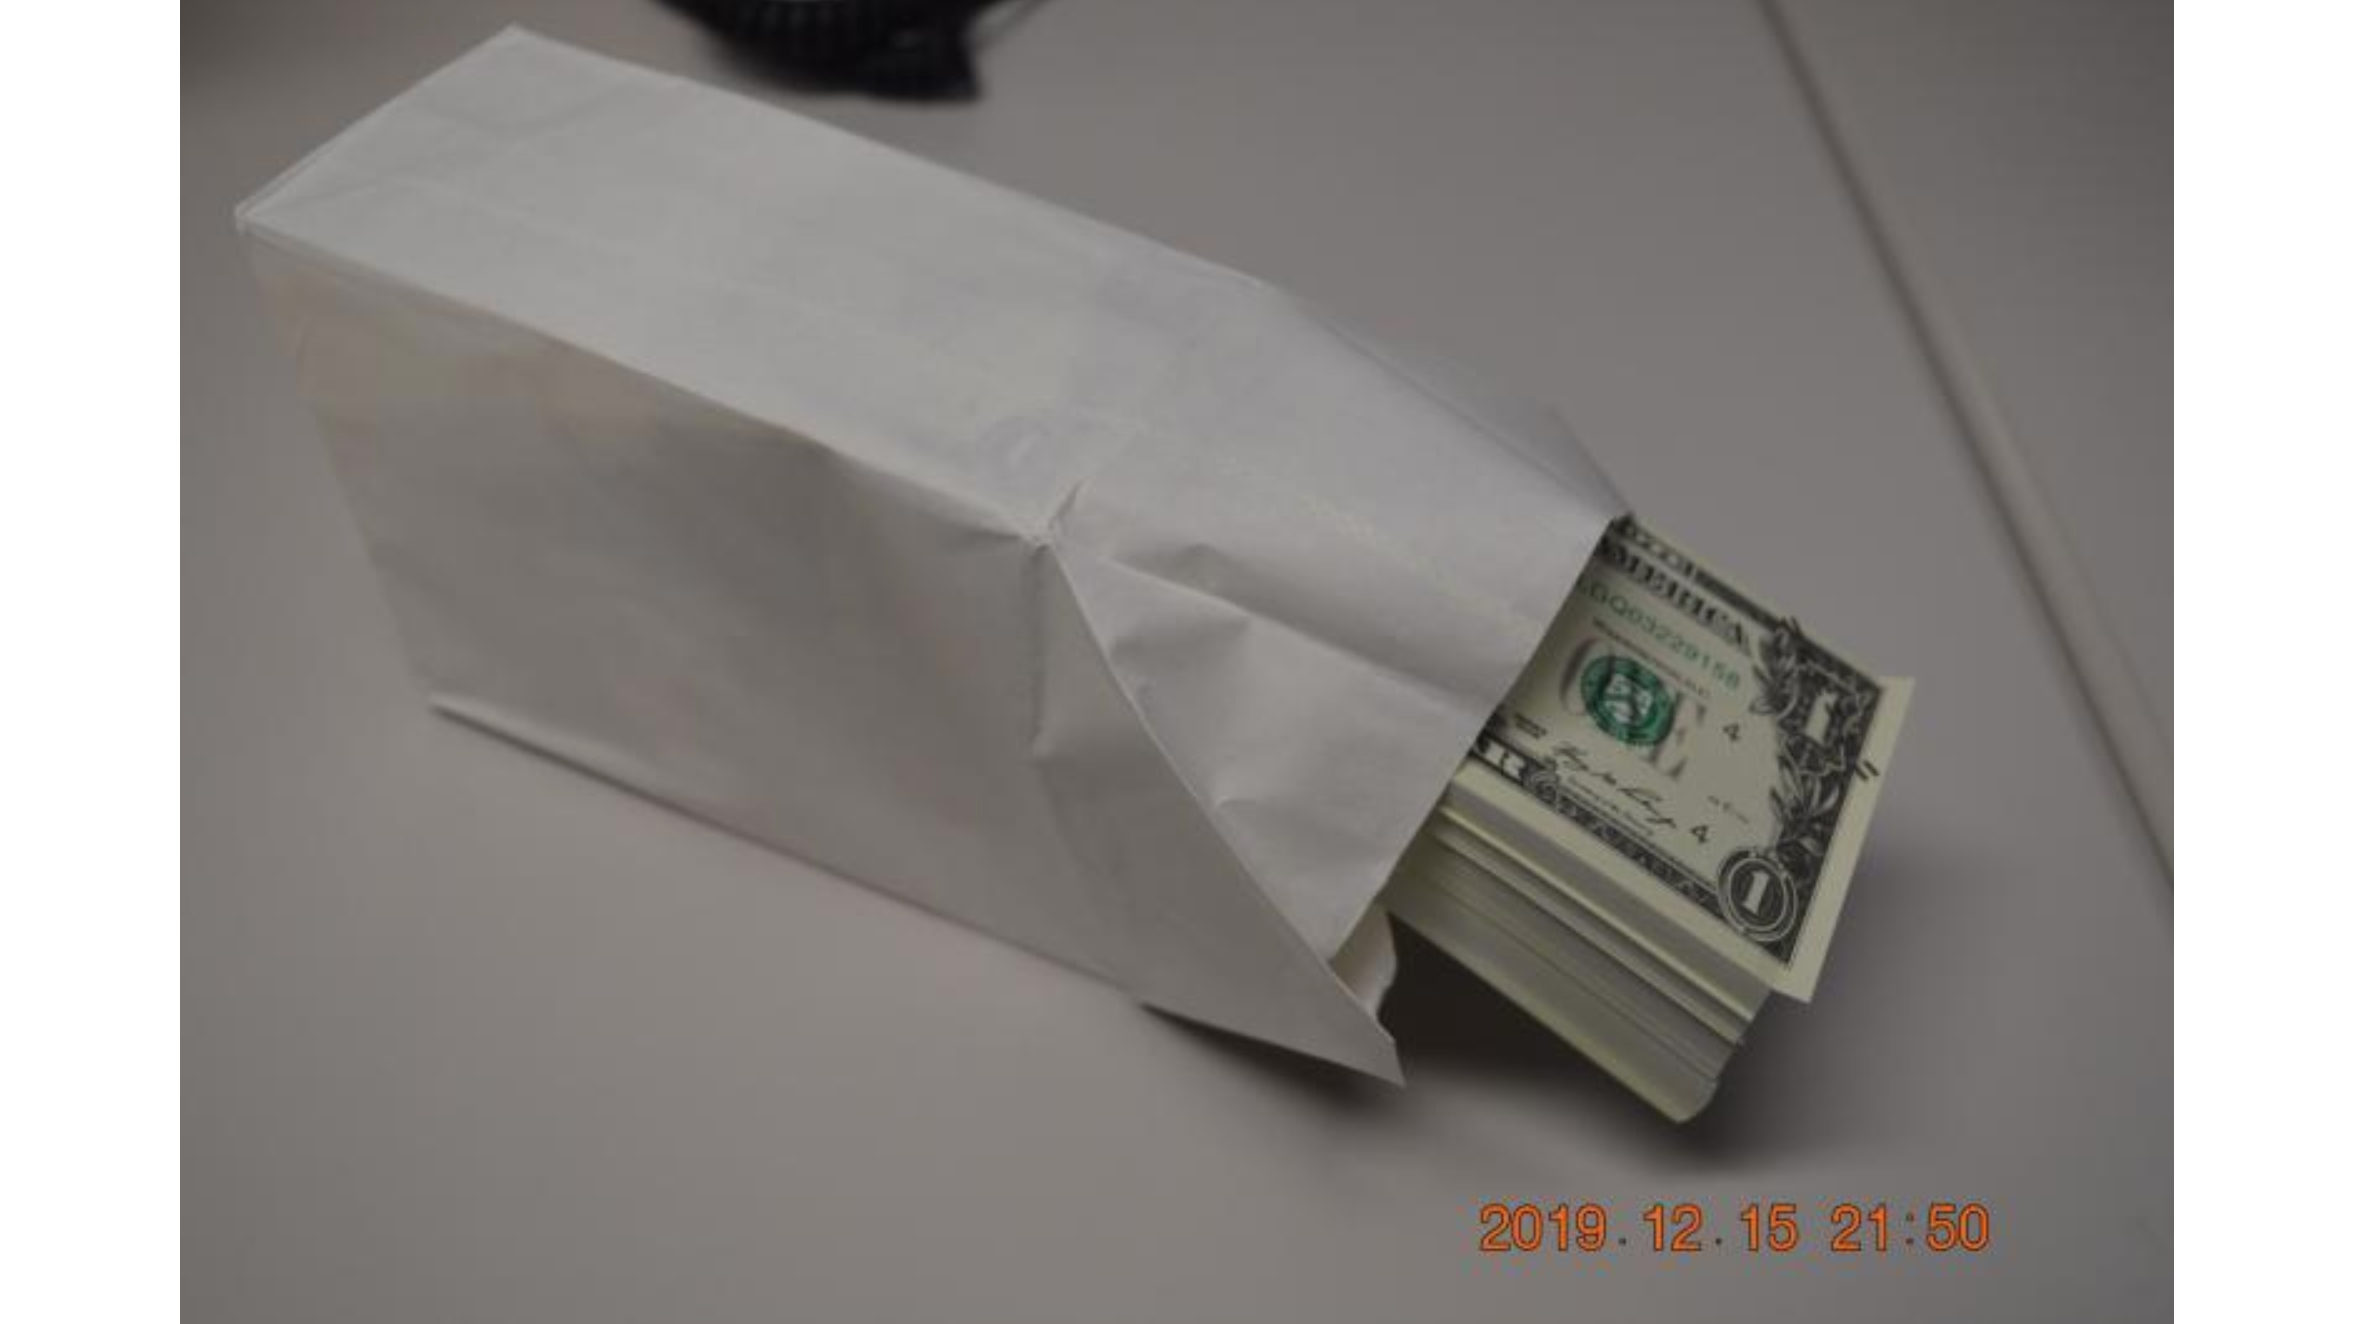 Customs police seized $900,000 in counterfeit money from a shipping container — all in $1 bills